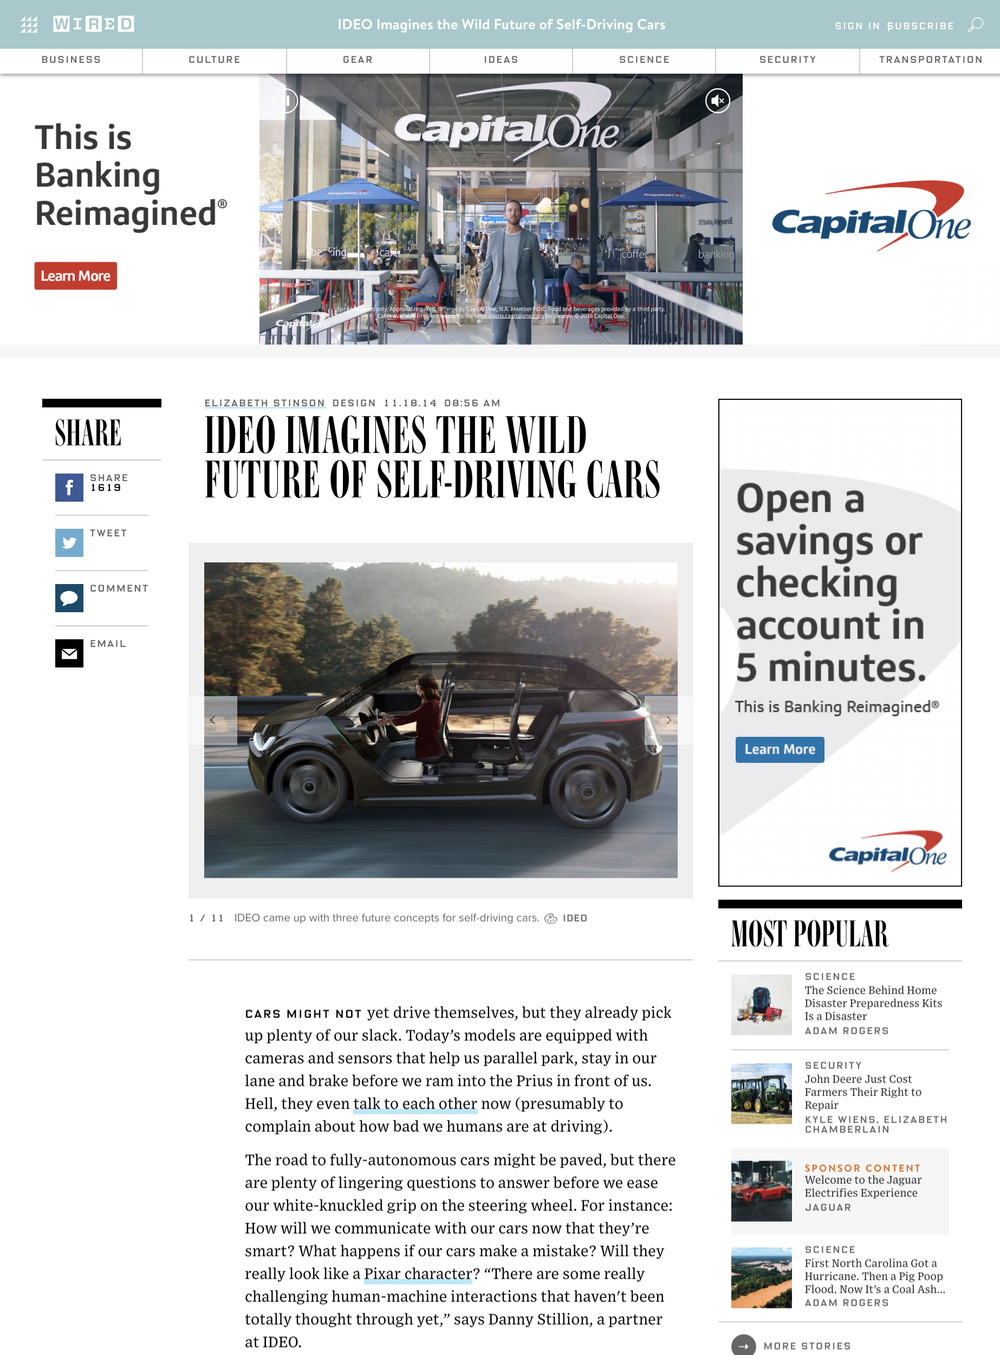 screencapture-wired-2014-11-ideo-imagines-self-driving-cars-2018-09-23-15_01_32 copy.png